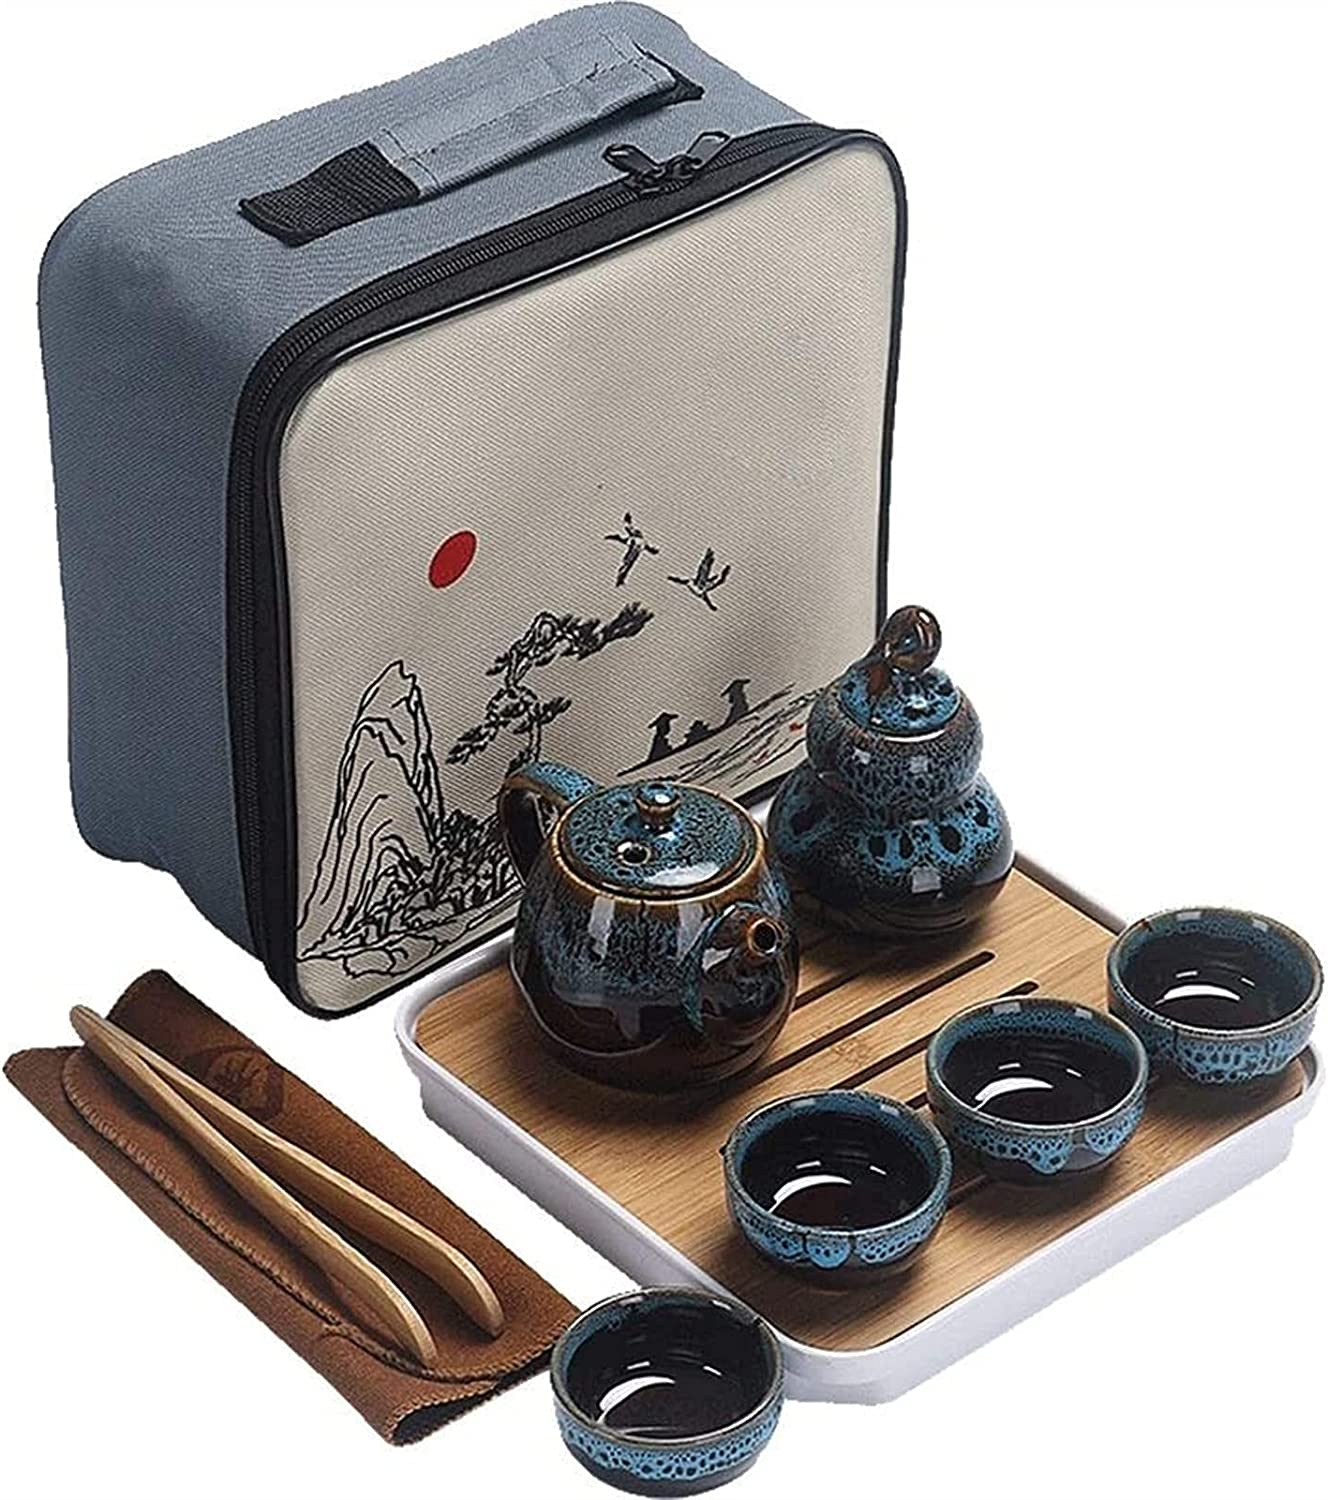 Genuine Free Shipping Exquisite Teapot The Ceramic Kiln Outdoor Inexpensive a Min Becomes Portable